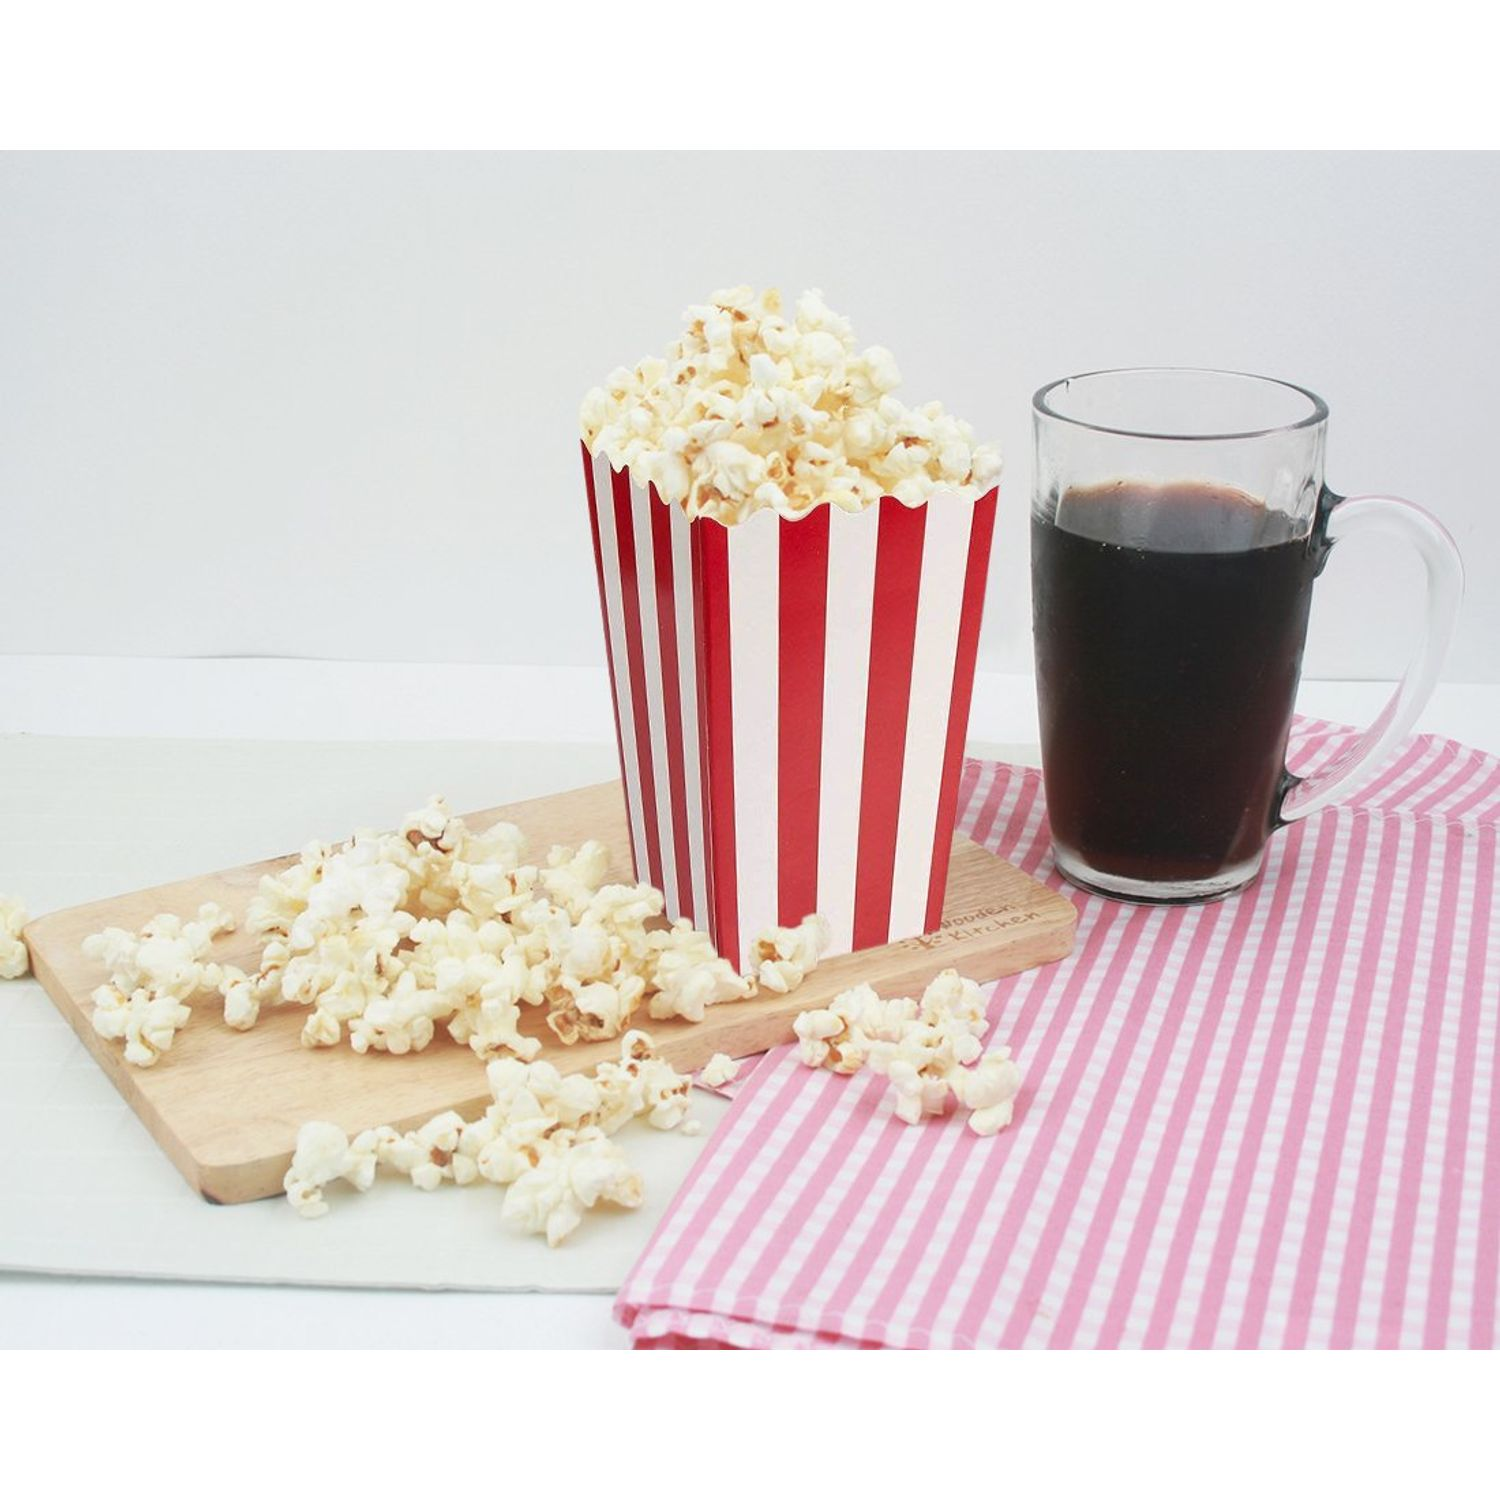 Red and White Birthdays Movie Night Blue Panda Set of 100 Mini Popcorn Favor Boxes 3.3 x 5.6 Inches 20 Ounce 3x5 Snack Containers for Carnival Party Supplies